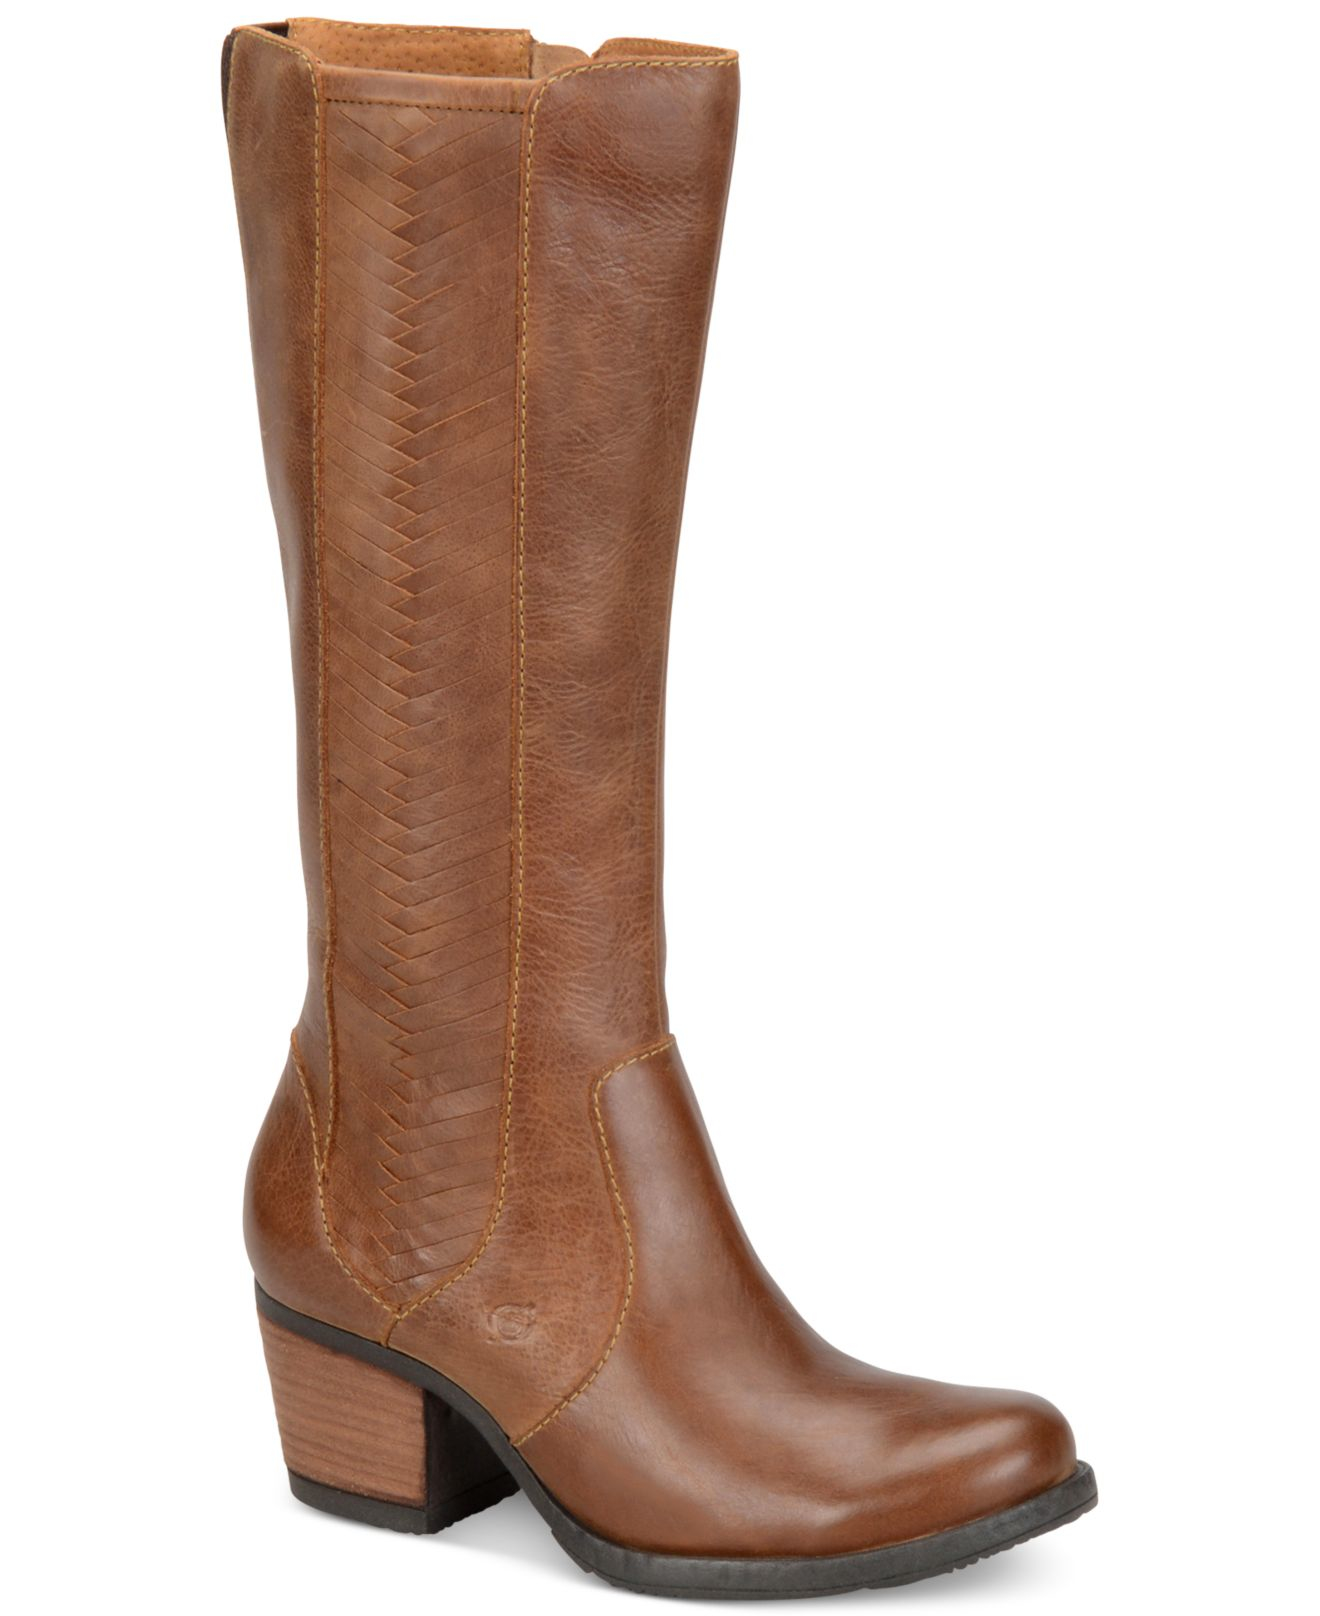 born may boots in brown lyst